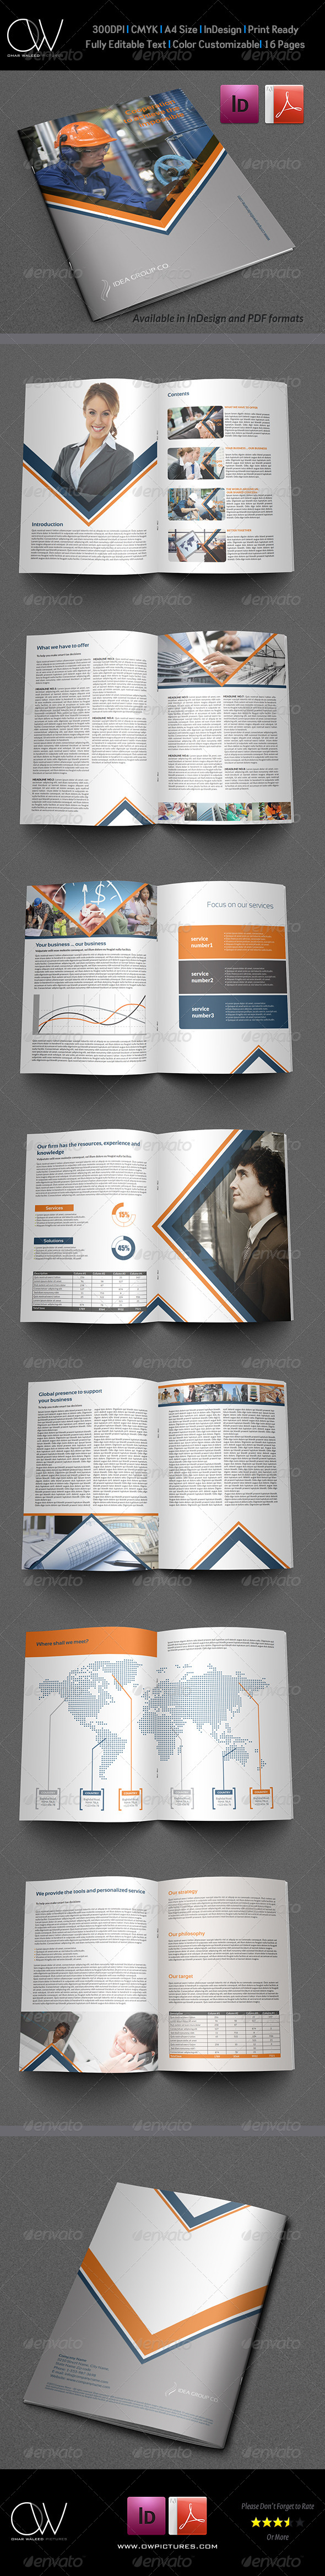 Company Brochure Template Vol.16 - 16 Pages - Corporate Brochures